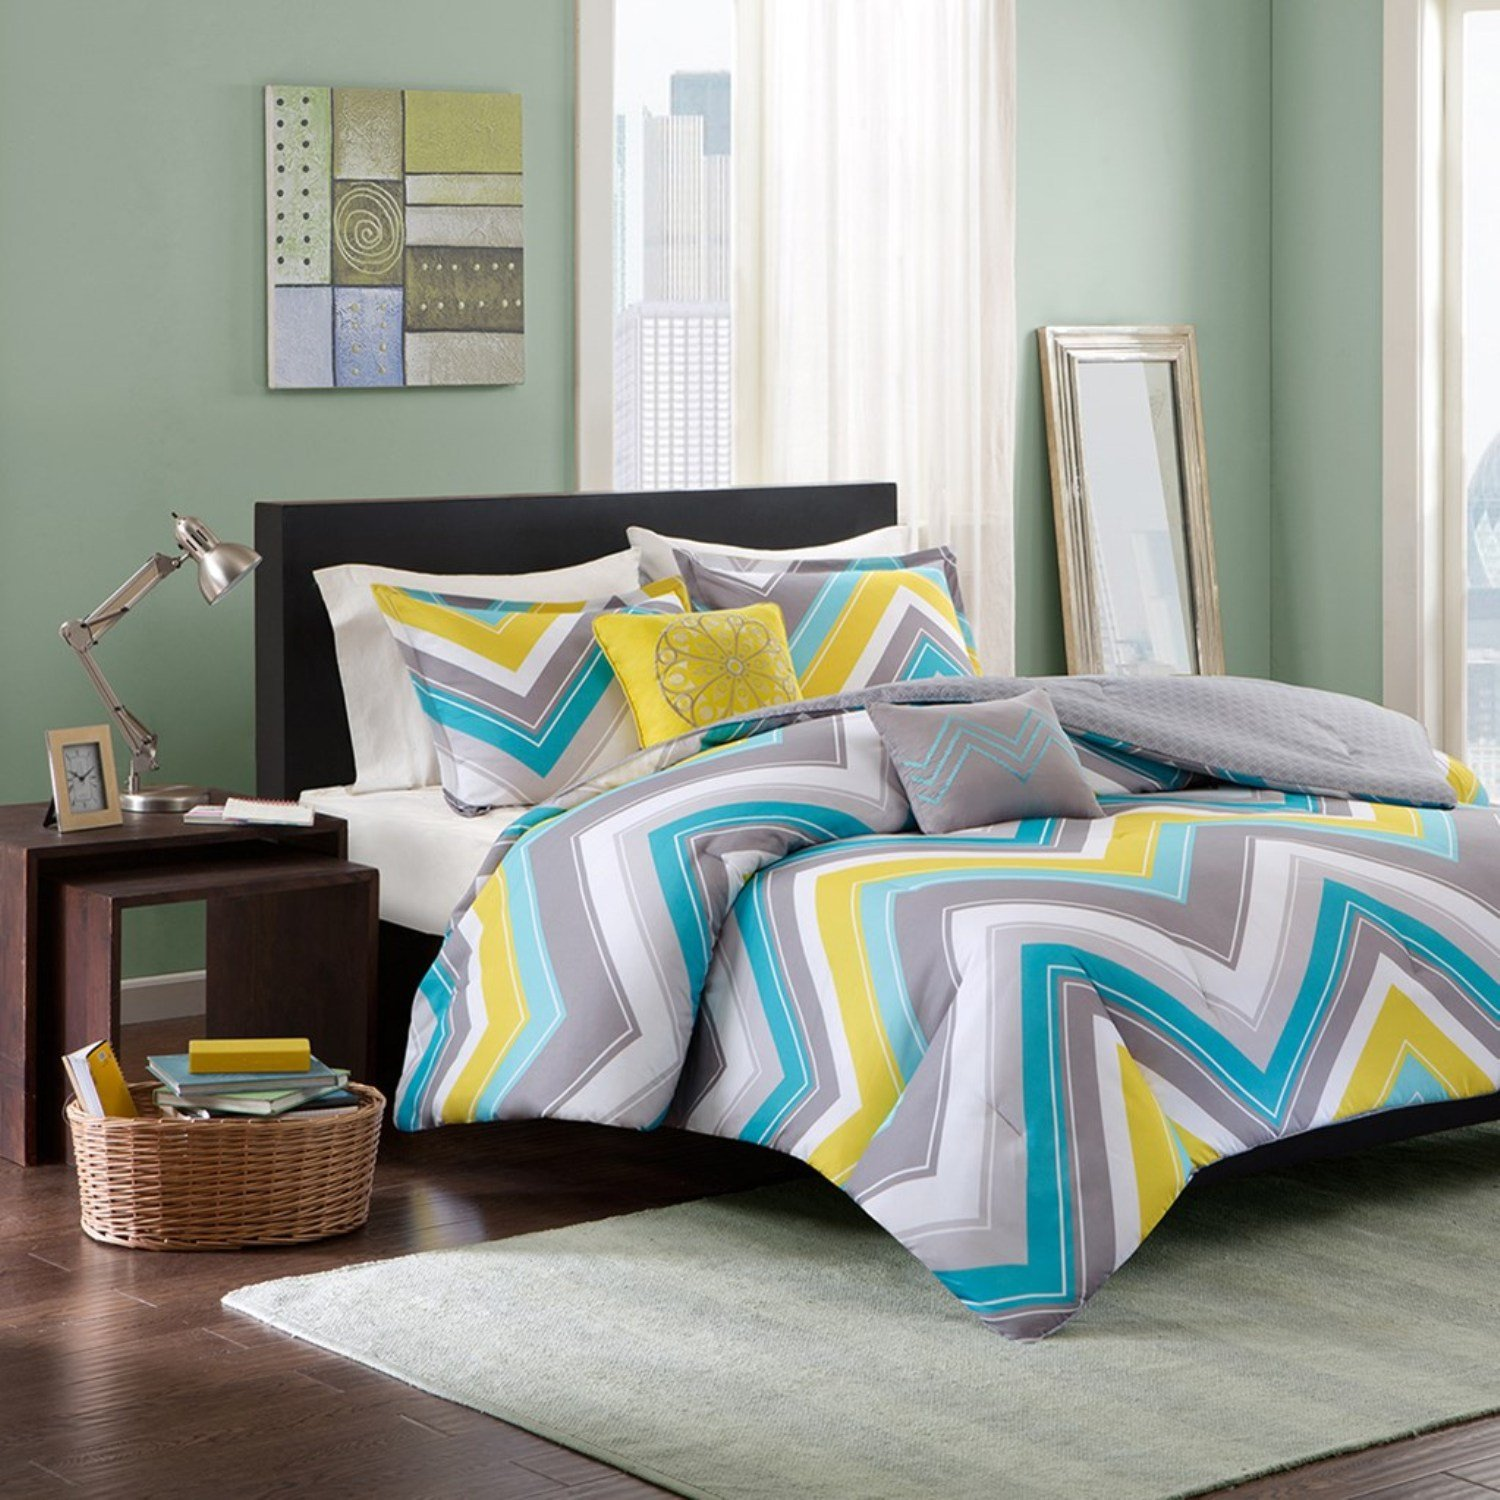 5 Piece Comforter Set Blue Full/Queen